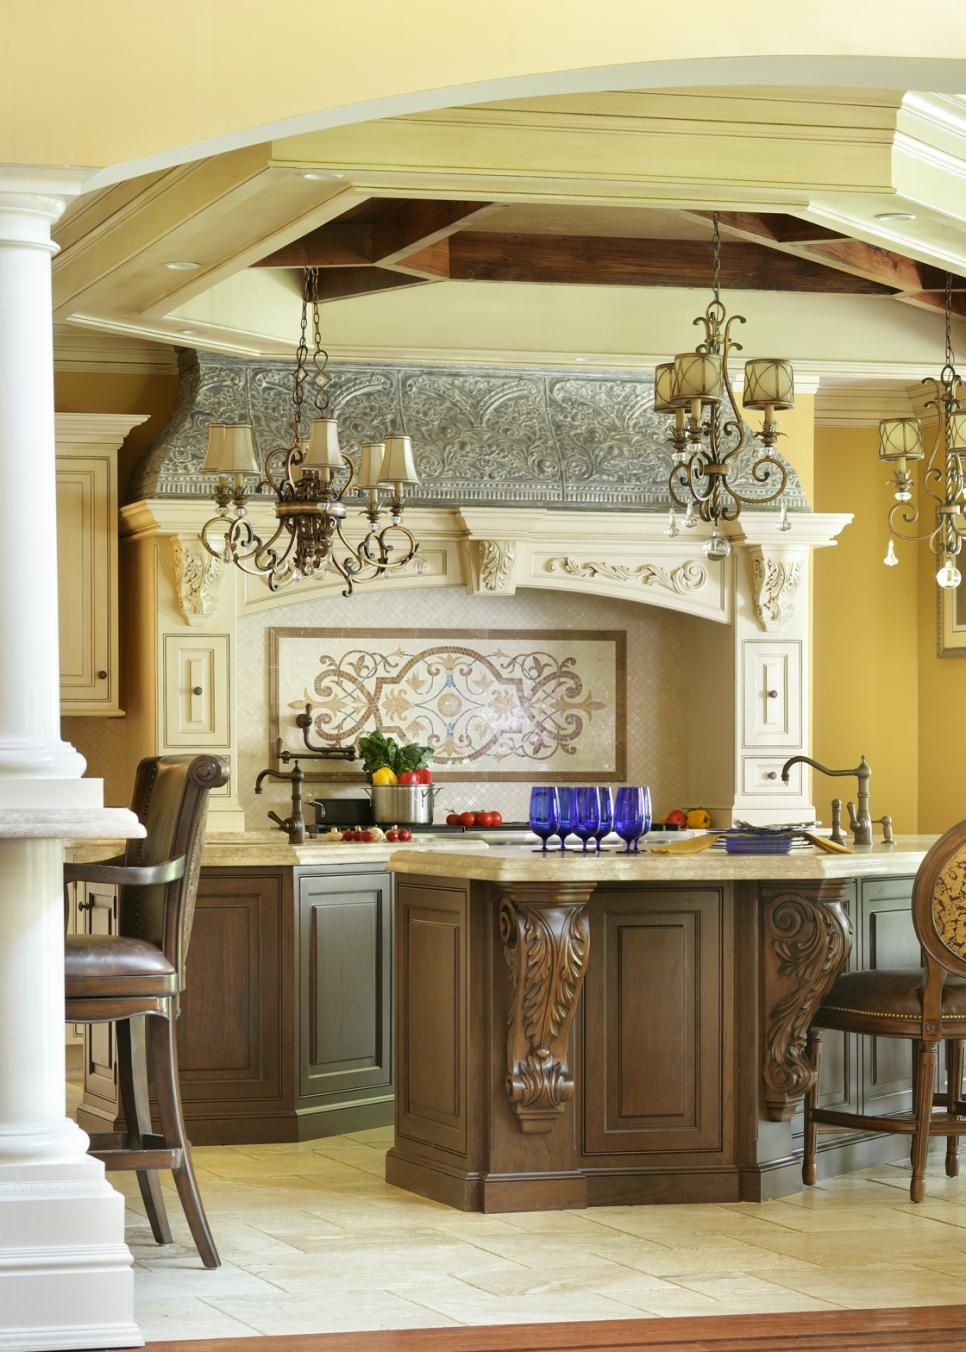 extraordinary kitchen ceiling designs | Scrolling chandeliers draw the eye upward to the kitchen's ...